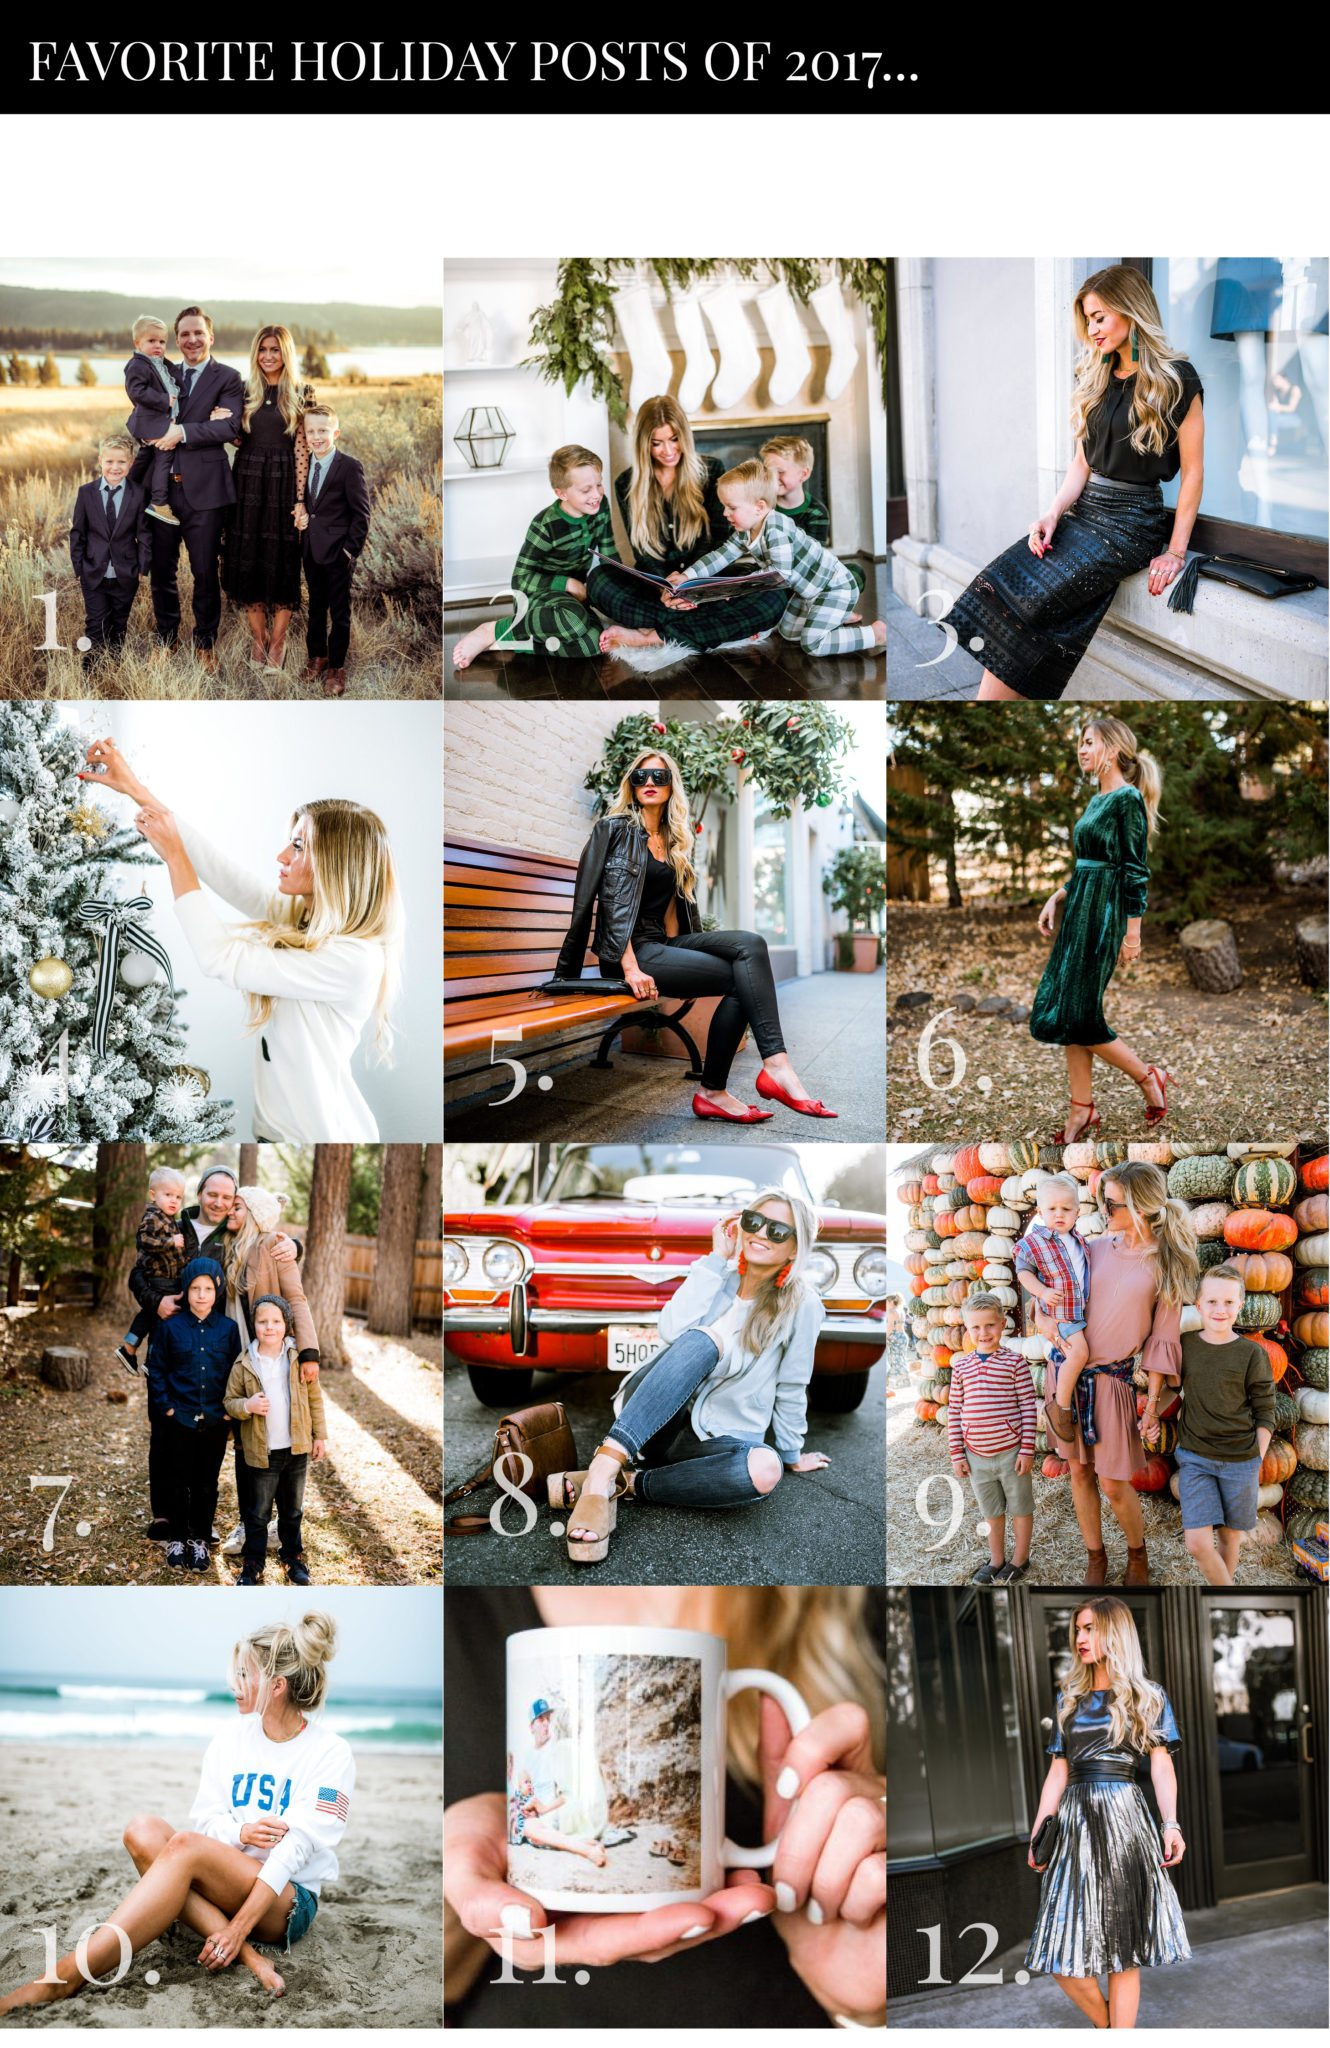 The Best Holiday Posts of 2017